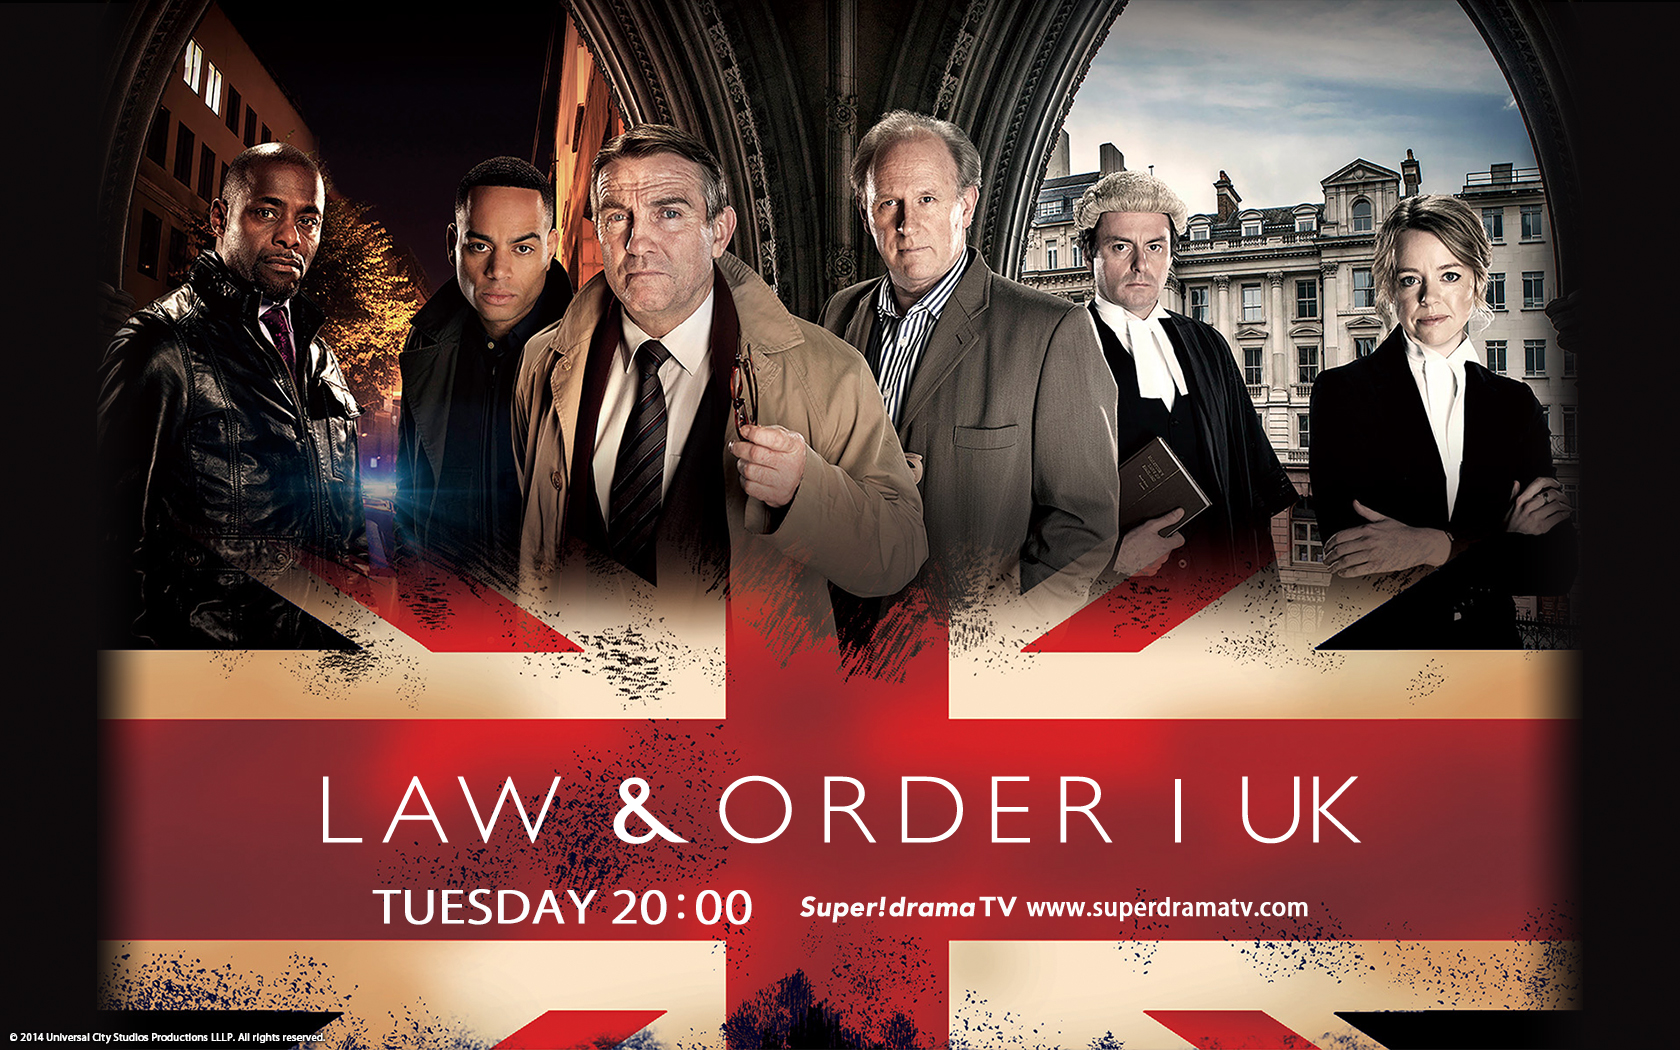 http://www.superdramatv.com/line/lawandorder_uk/features/wallpaper/img/s5_1680_1050.jpg